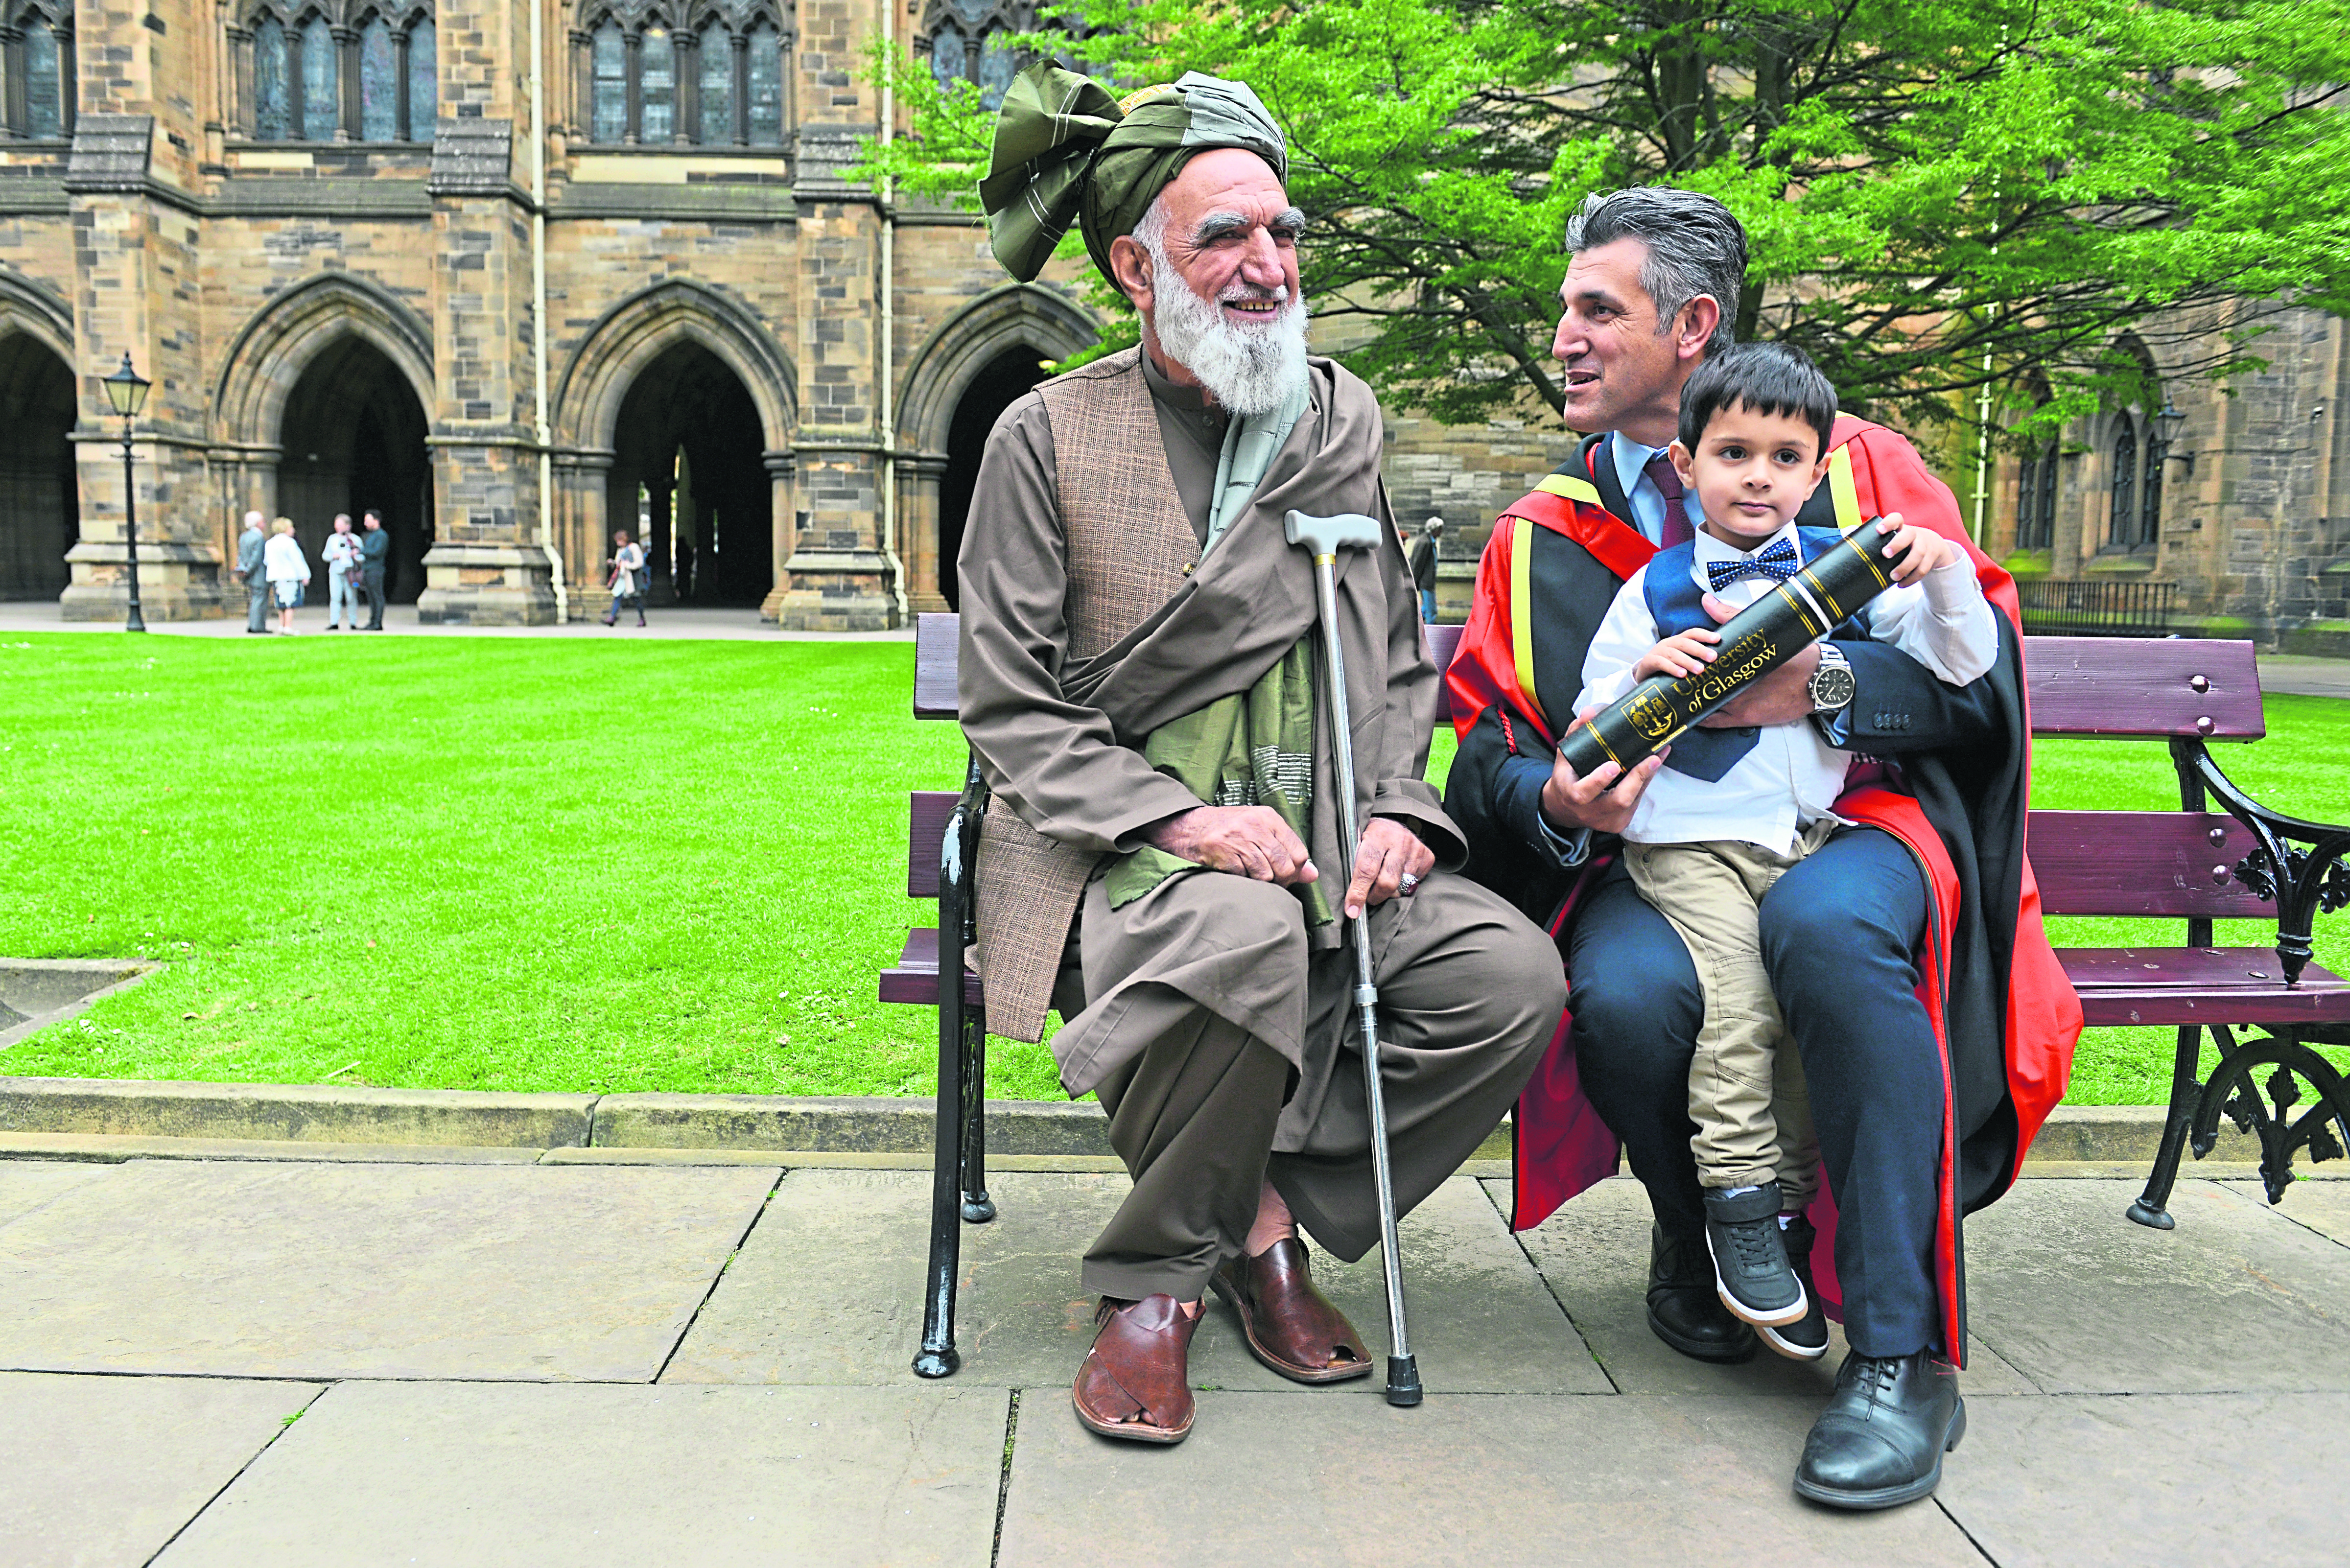 The special moment the head of the Scottish Refugee Council collected his honorary doctorate in front of his father despite him previously being denied entry to the UK.